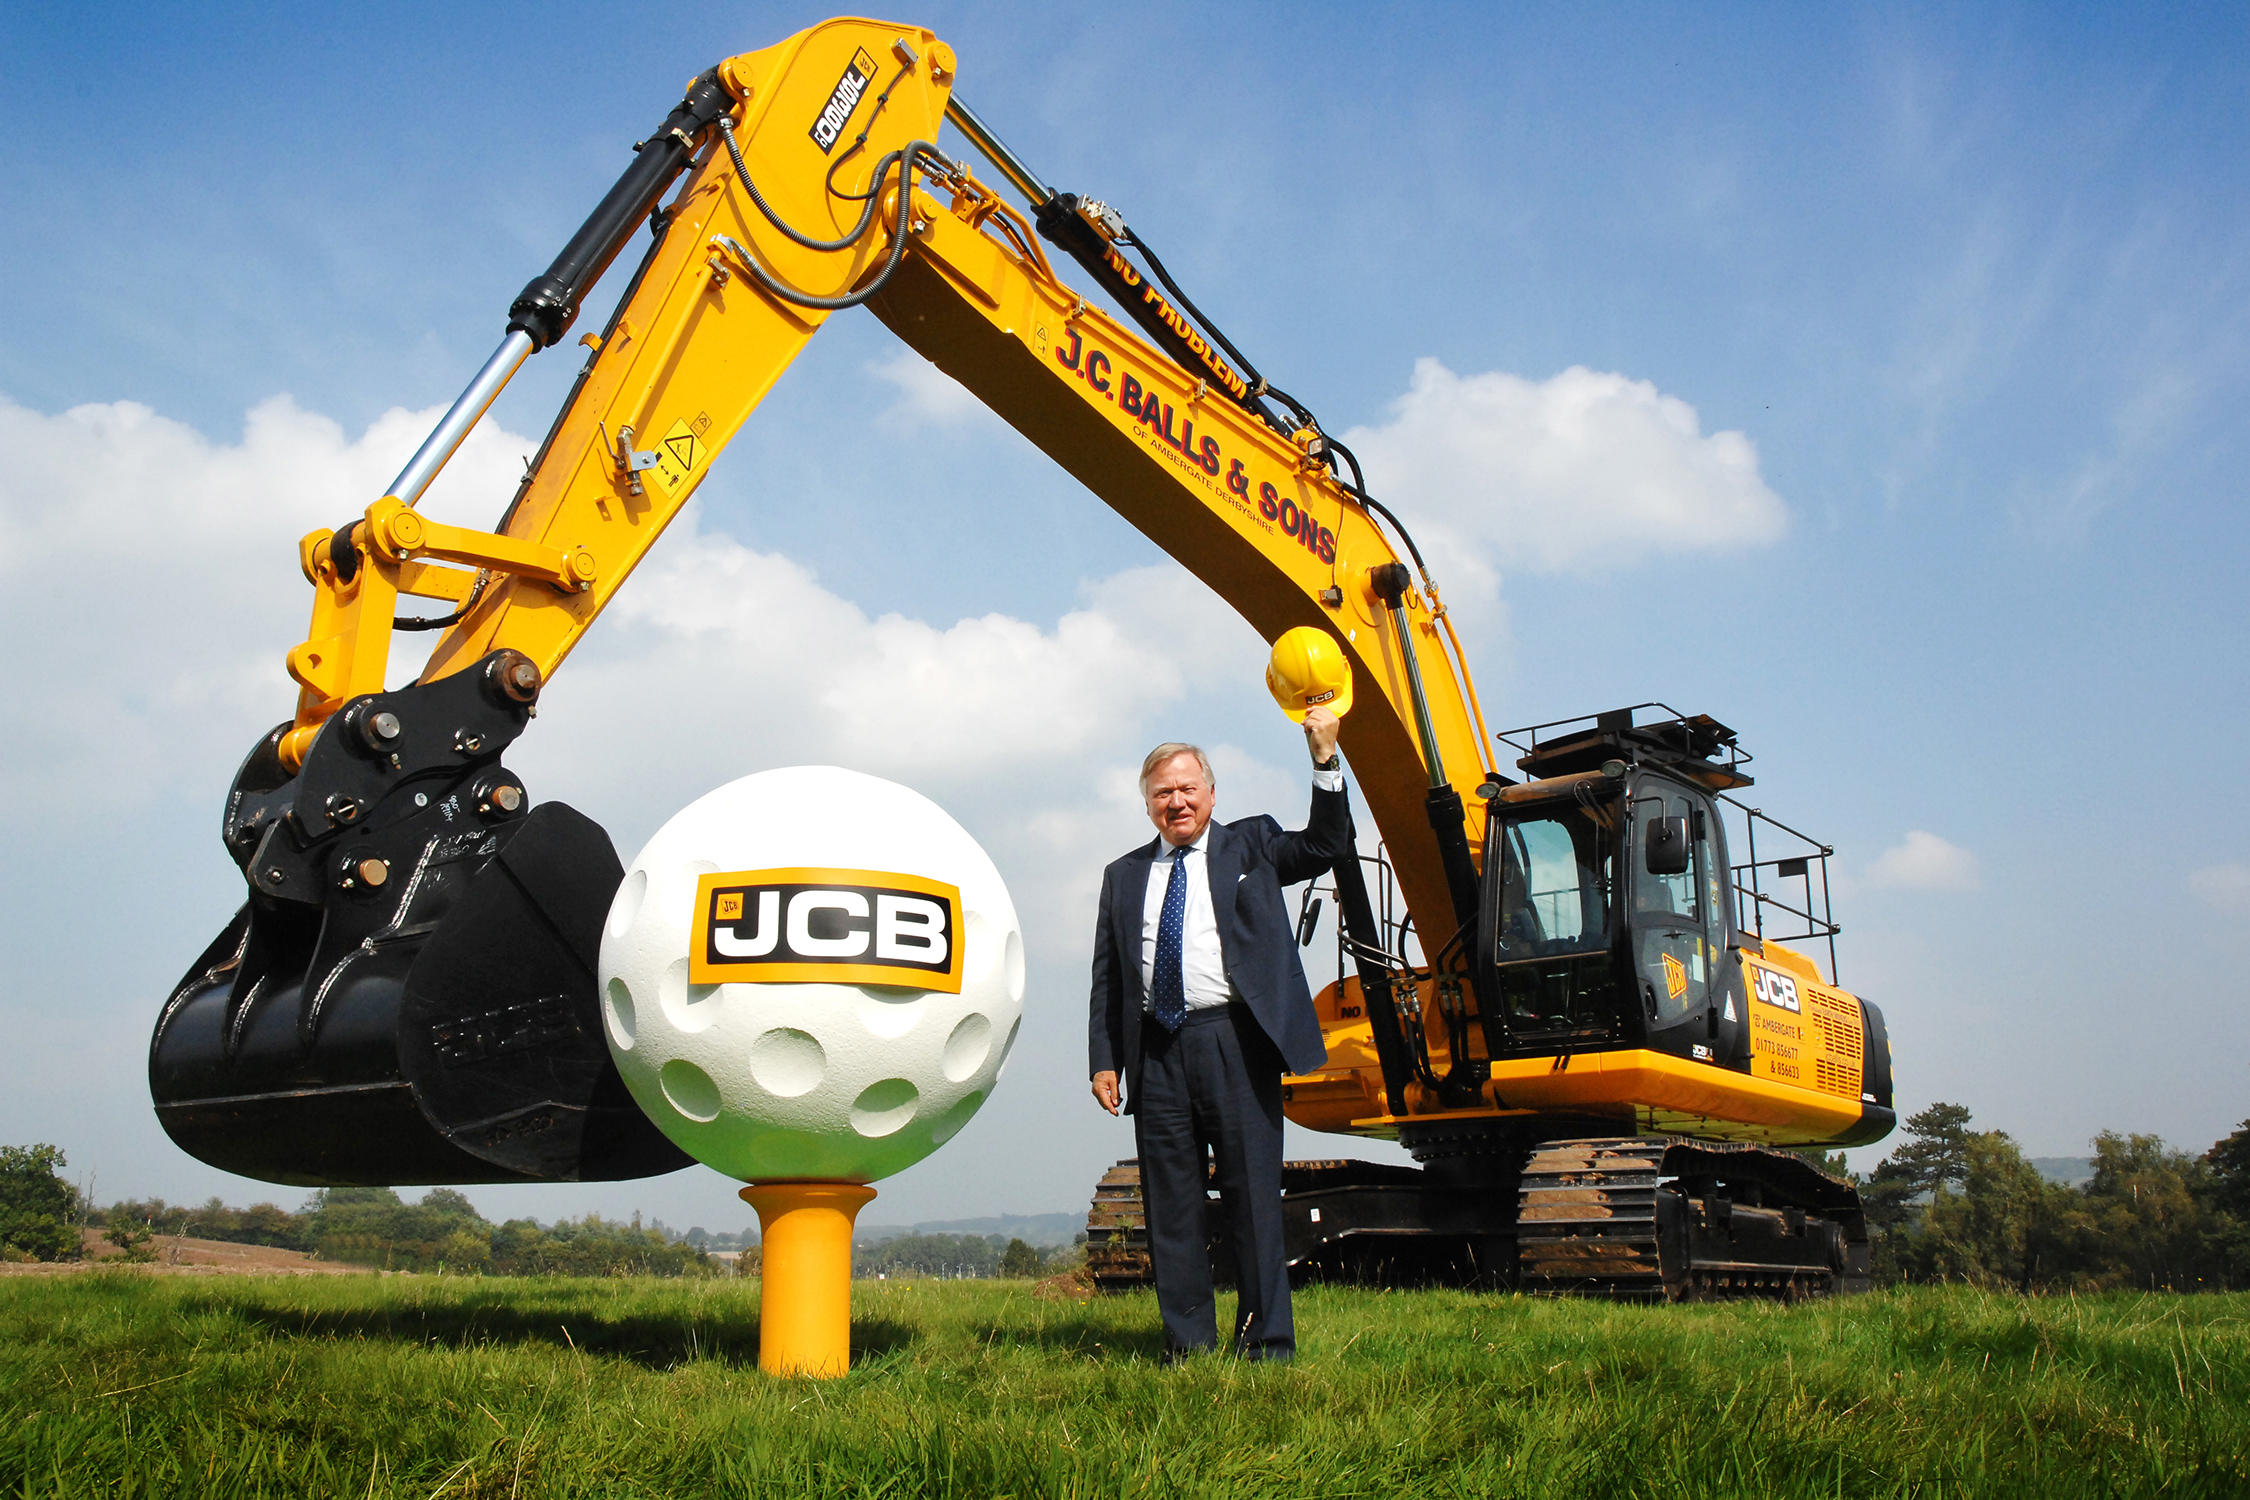 Lord Bamford and JCB Golf